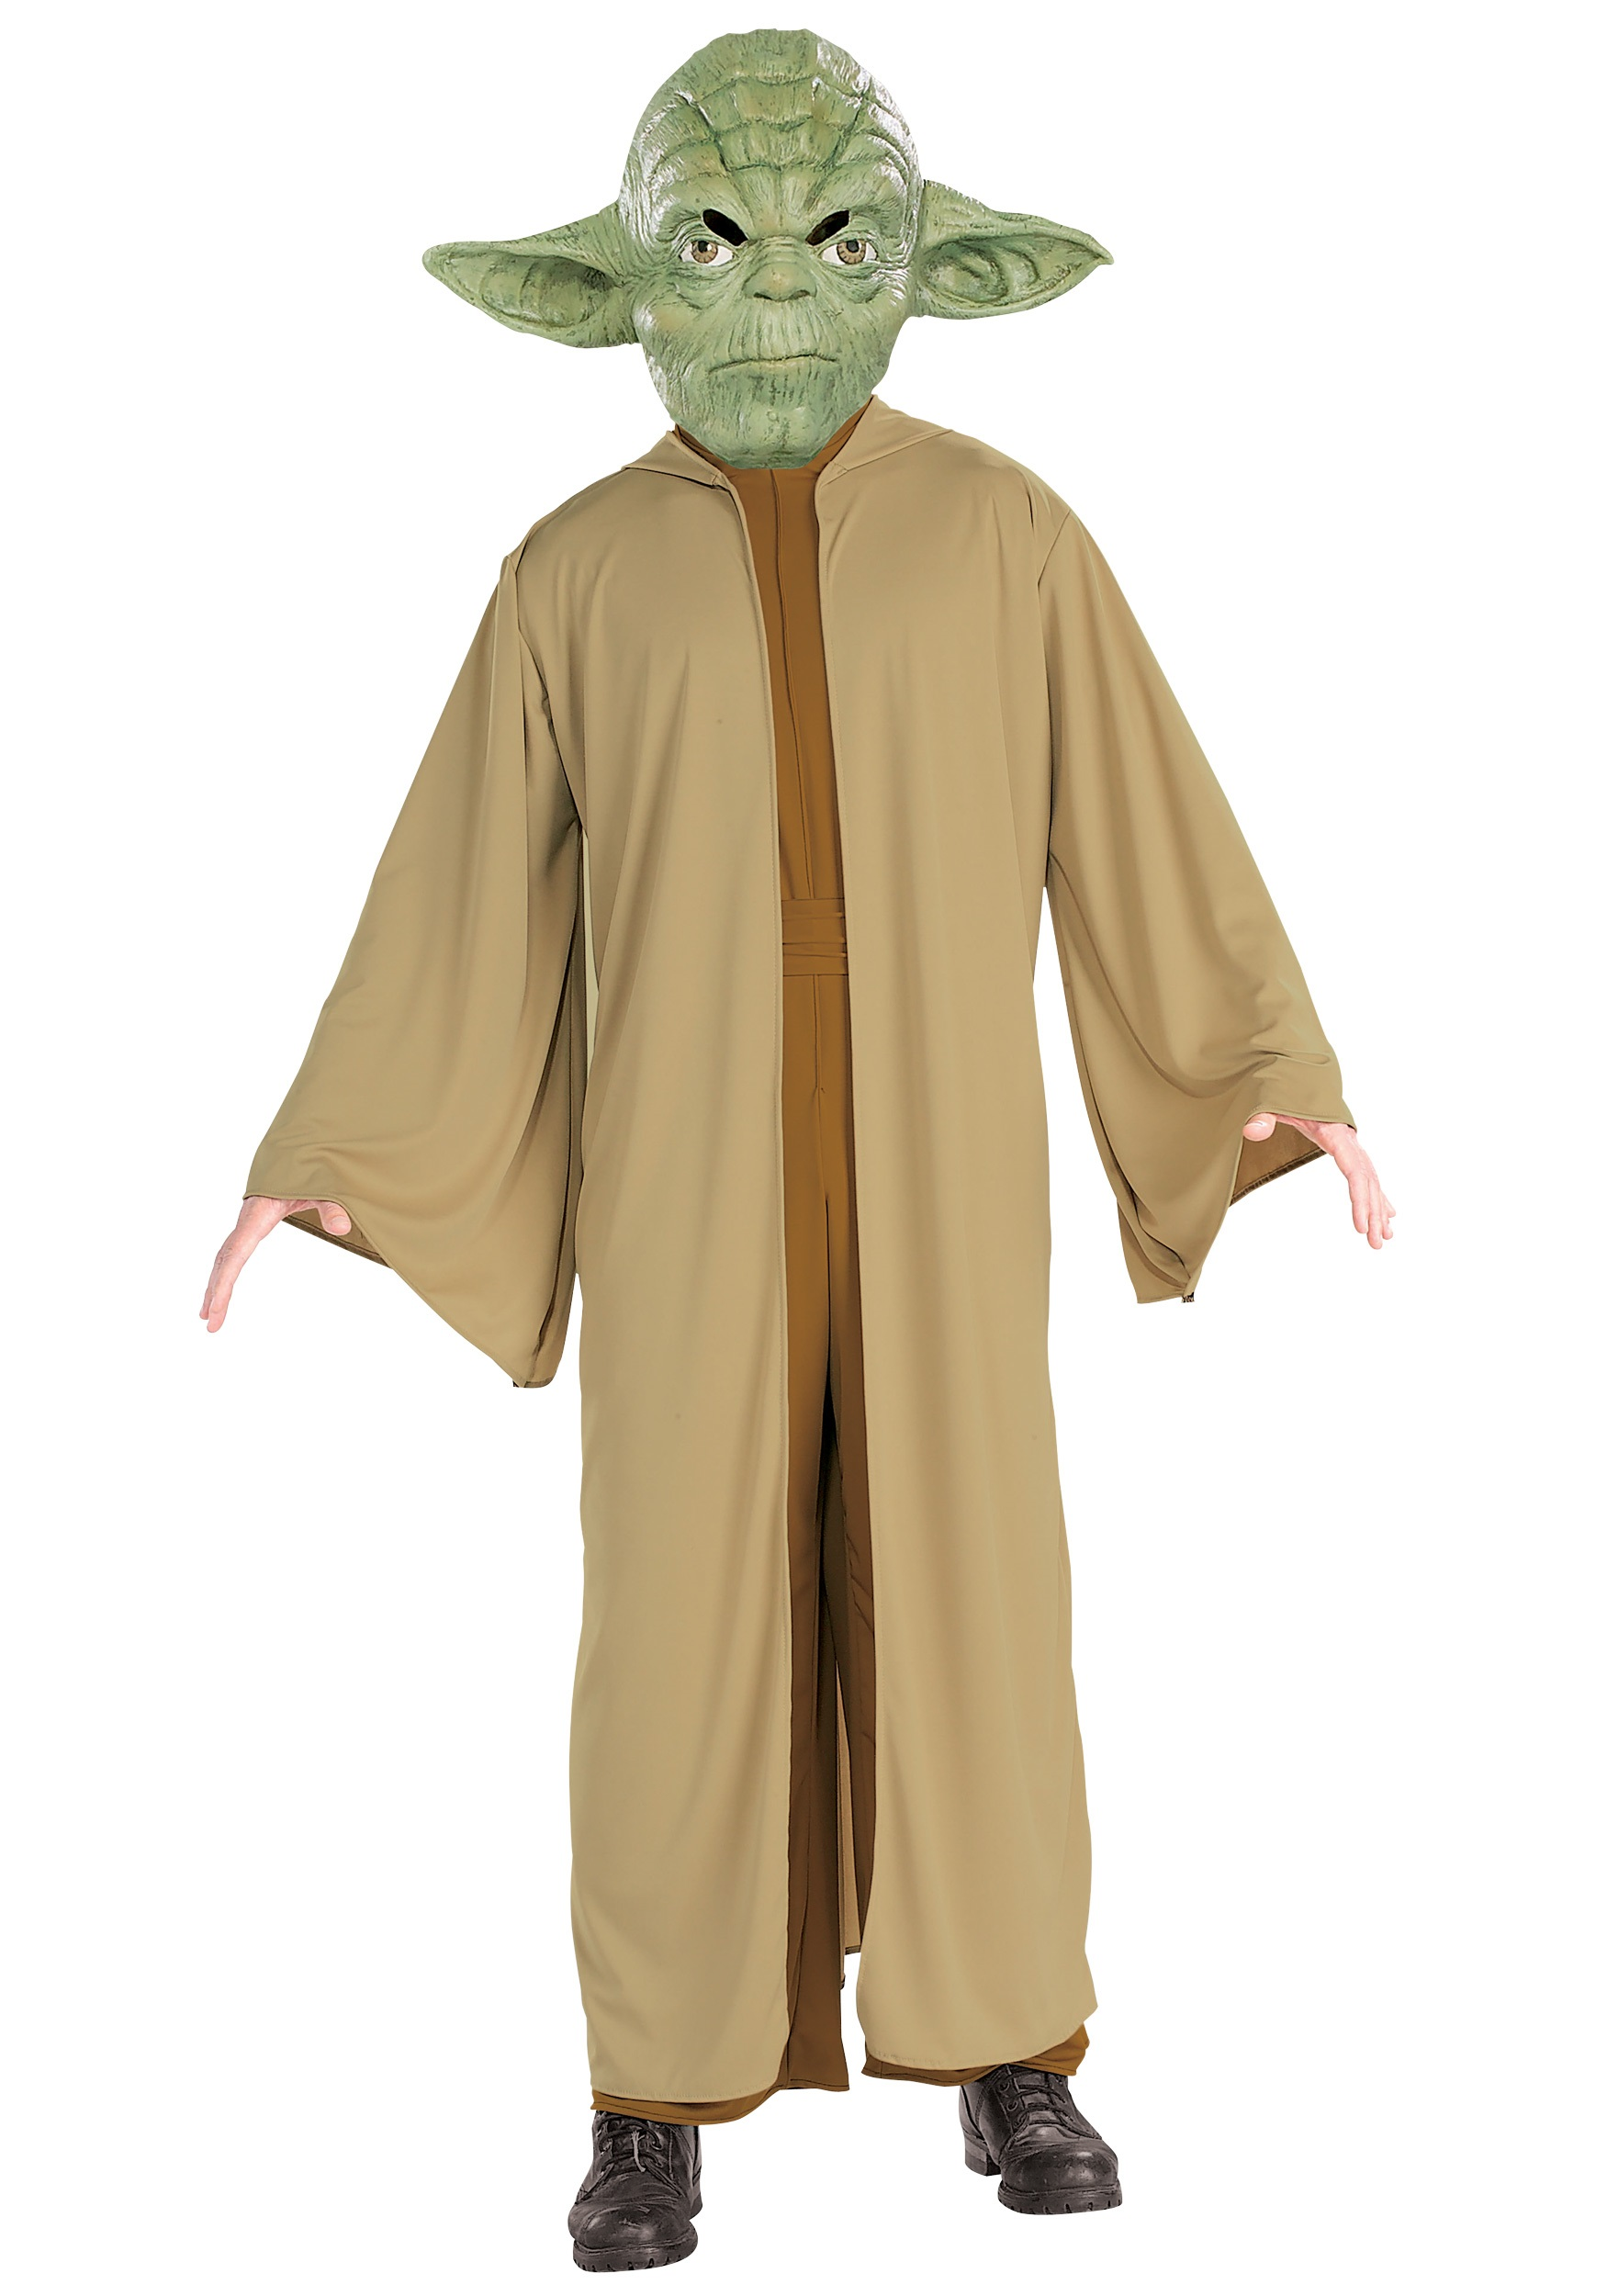 INOpets.com Anything for Pets Parents & Their Pets Adult Yoda Fancy Dress Costume